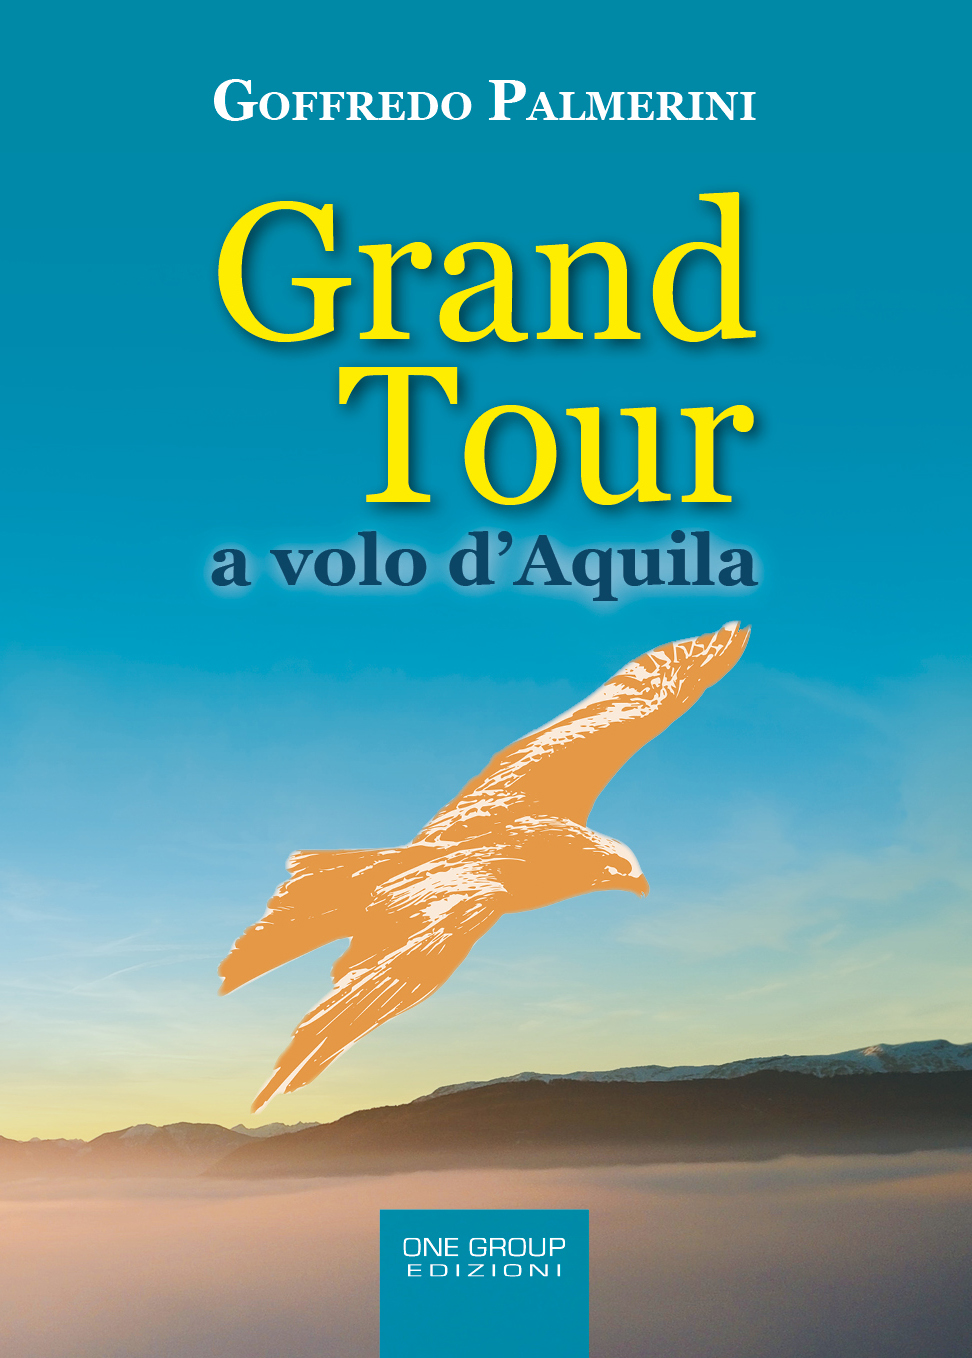 """Grand Tour a volo d'Aquila"": intervista all'autore Goffredo Palmerini"